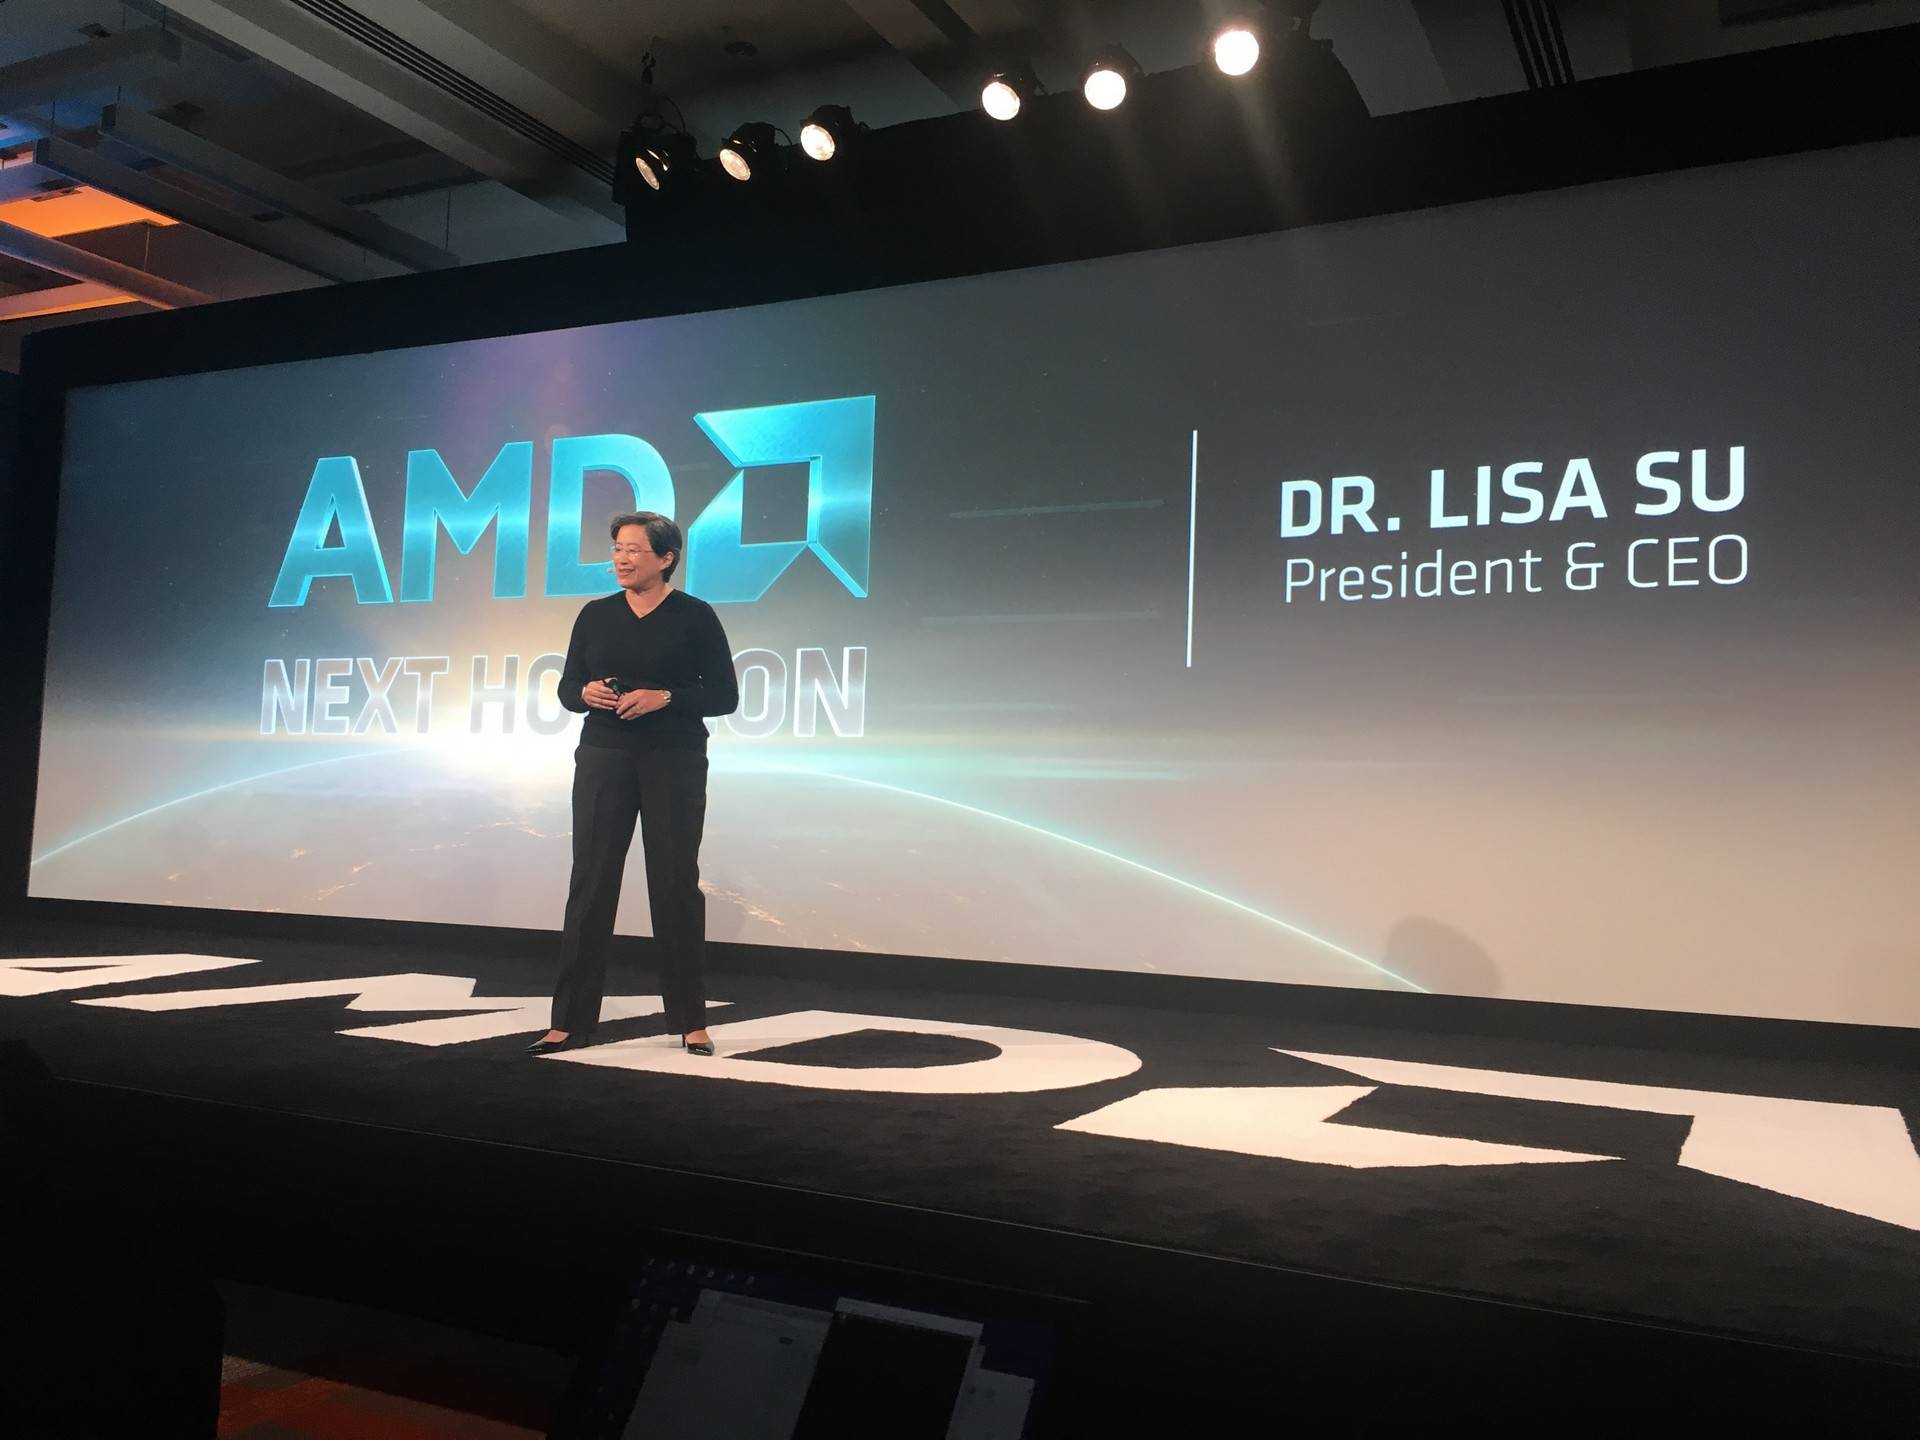 AMD Next Horizon Evento